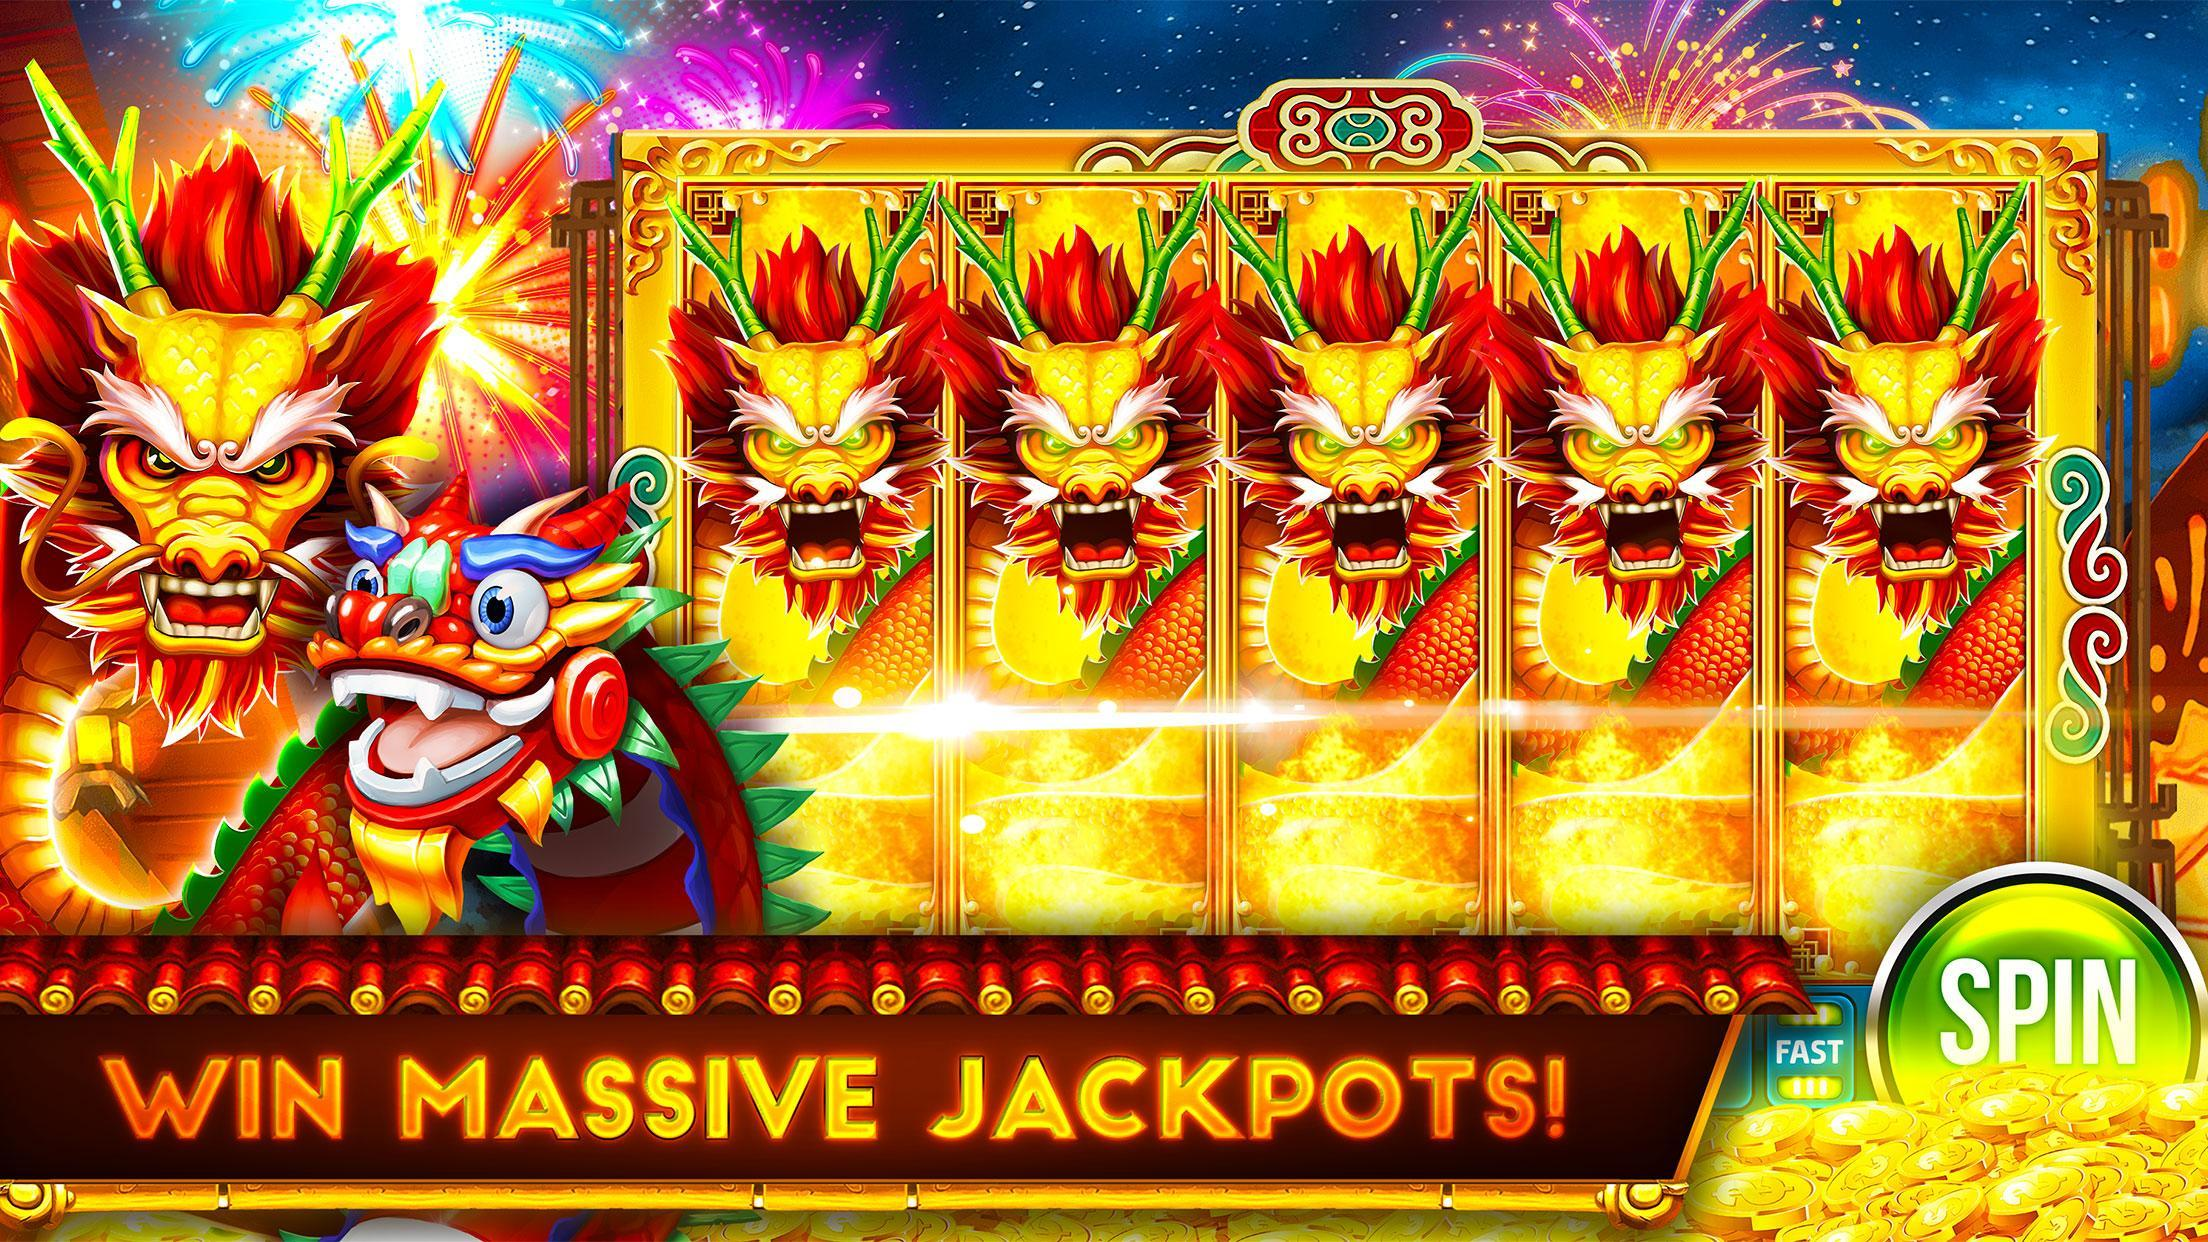 How to play online slot games to win the jackpot